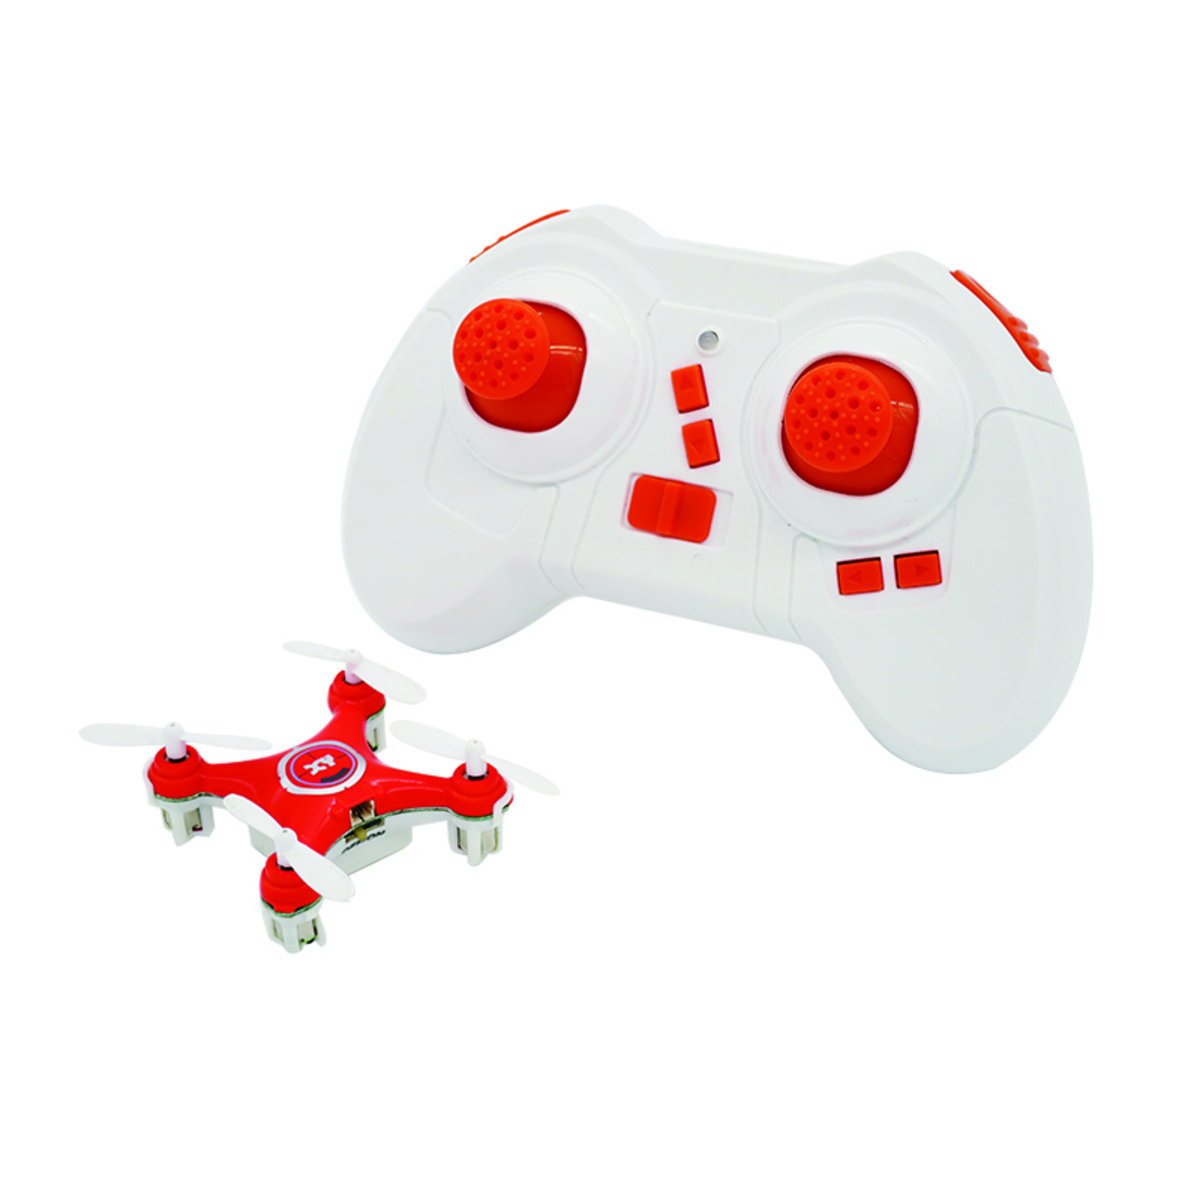 Sky Walker 2.4GHz Mini Quadcopter